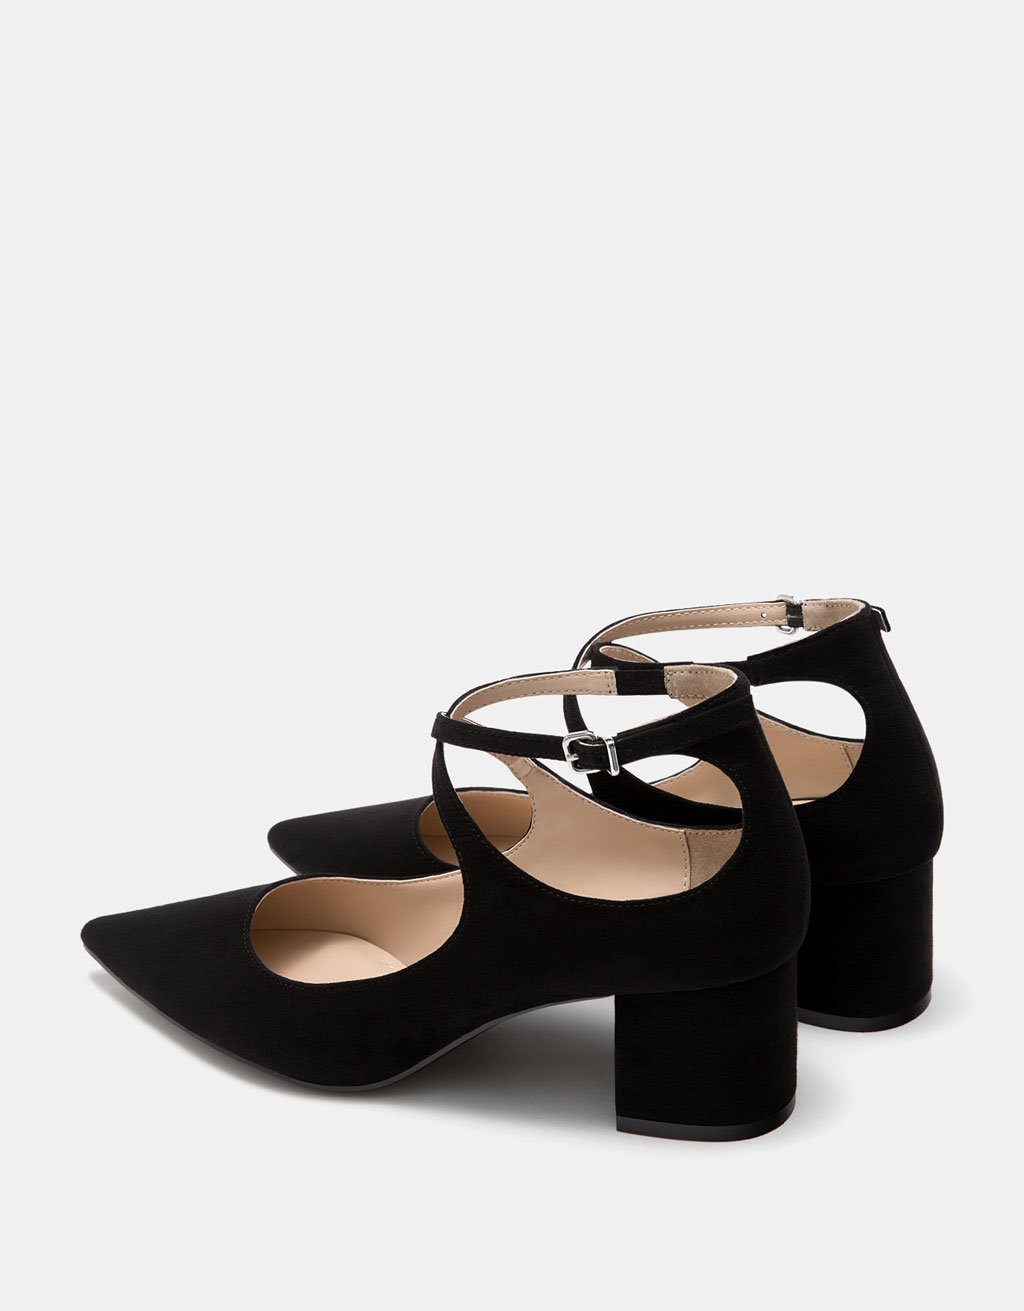 Block heel shoes with ankle strap and pointed toe